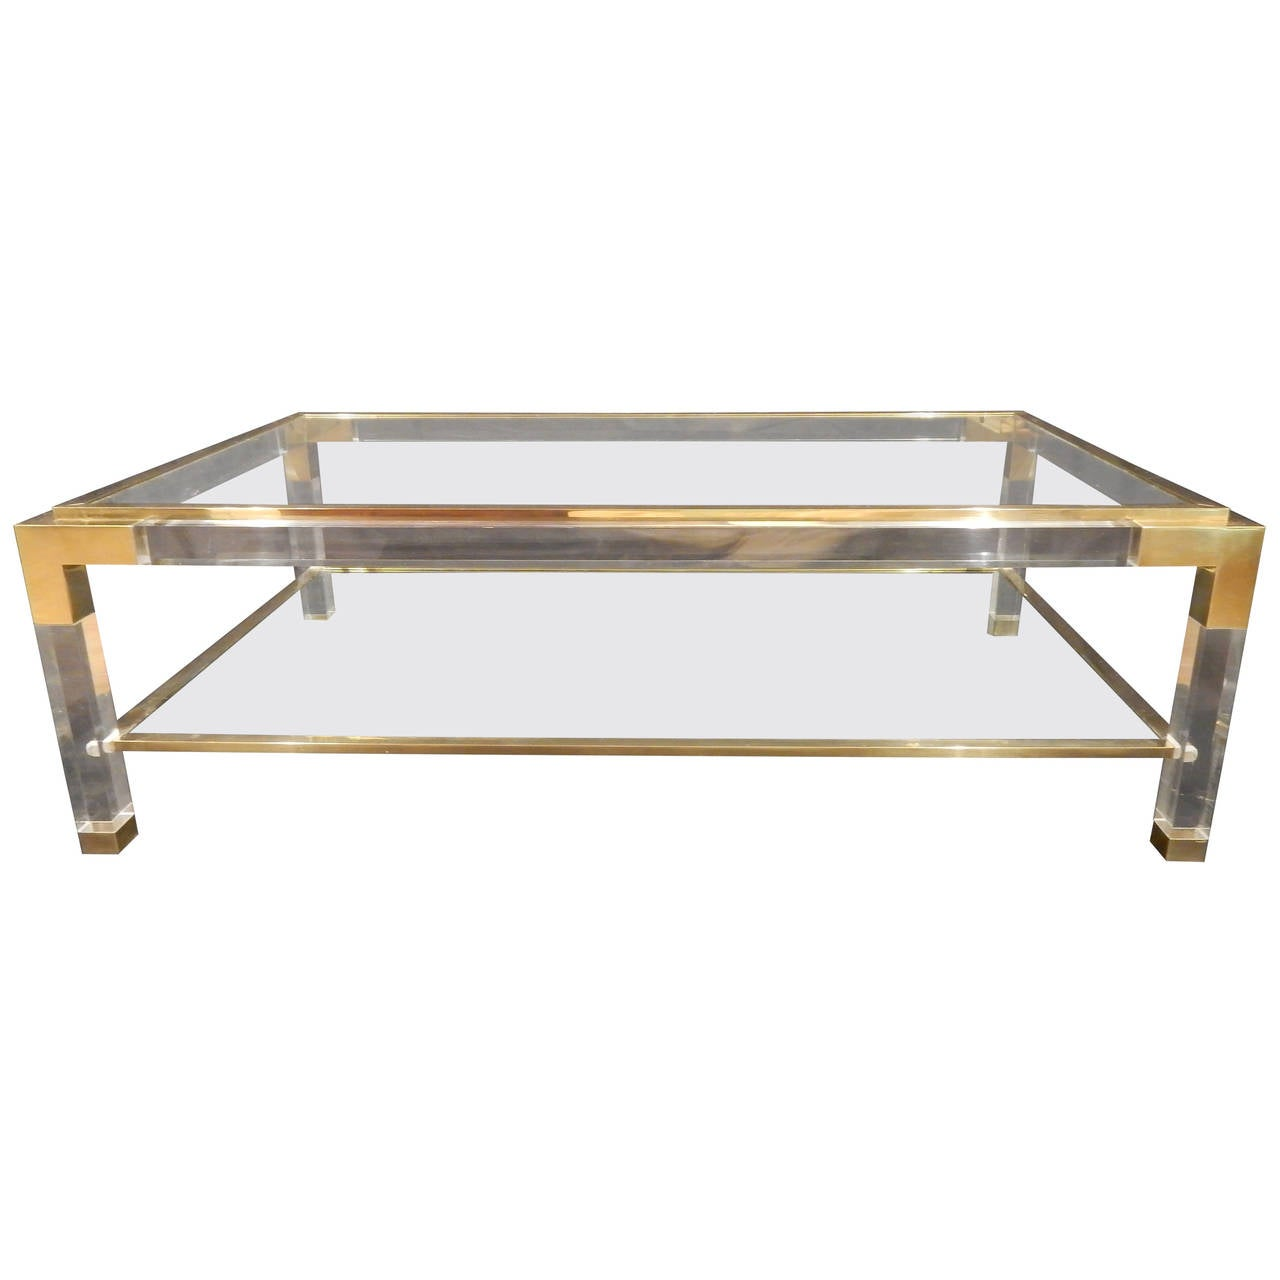 Vintage brass lucite and glass coffee table at 1stdibs for Vintage coffee table